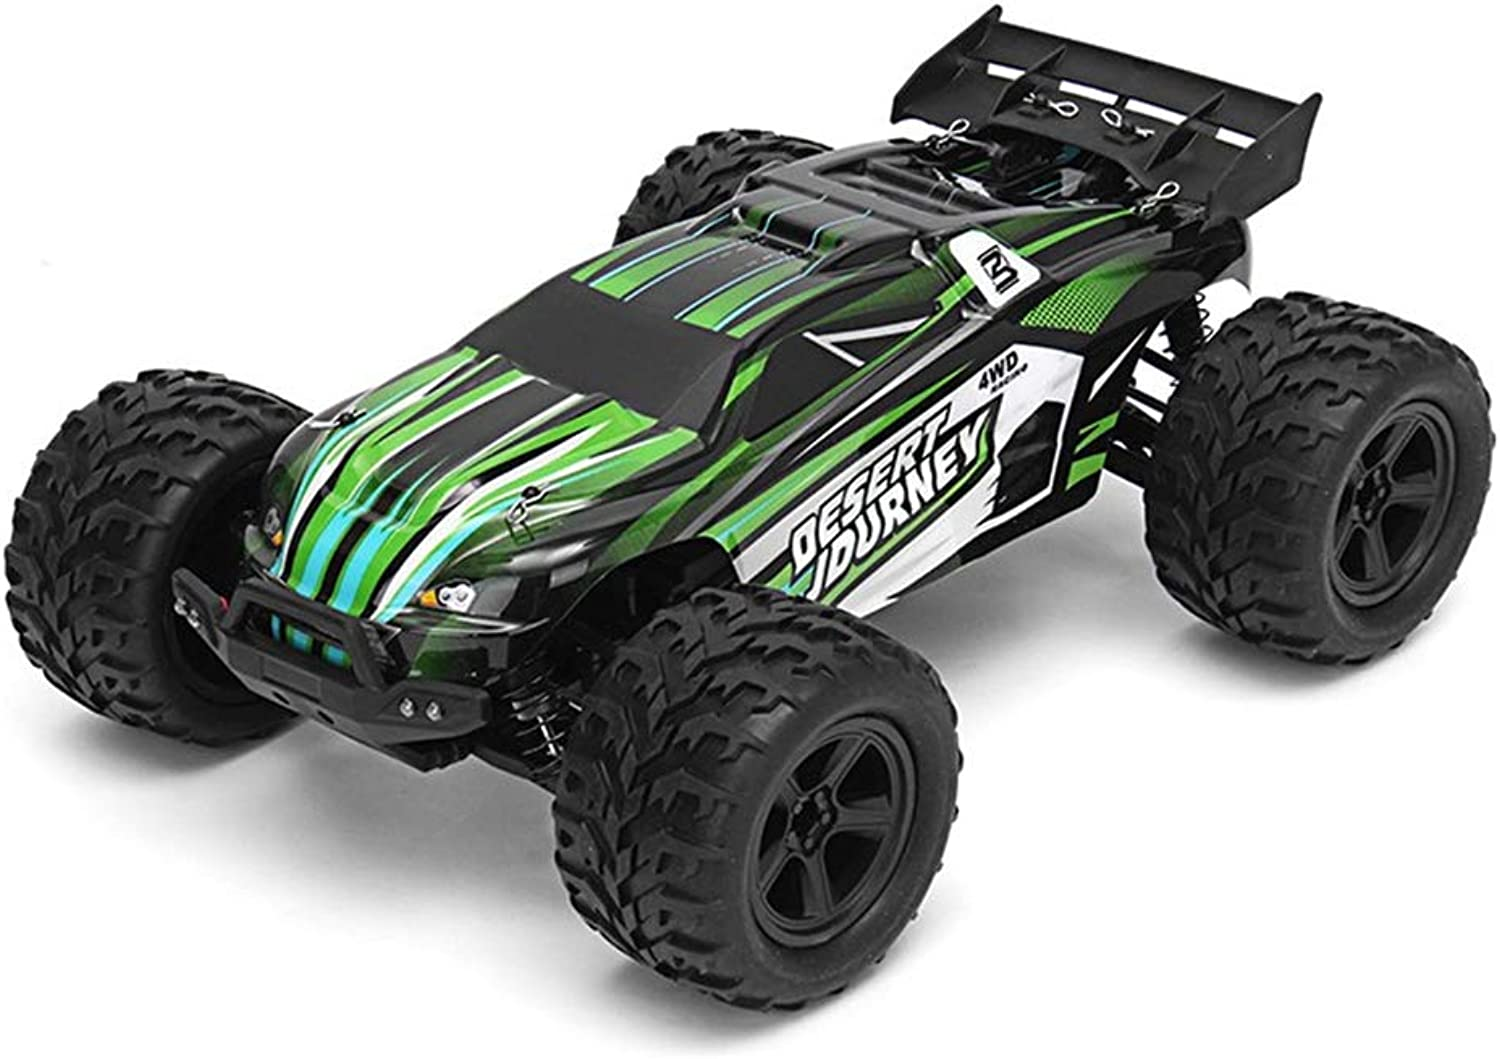 LSQR RC Car 2.4G 1 12 Scale 4WD High Speed 40Km H Cross Country Semi Truck Models Toys